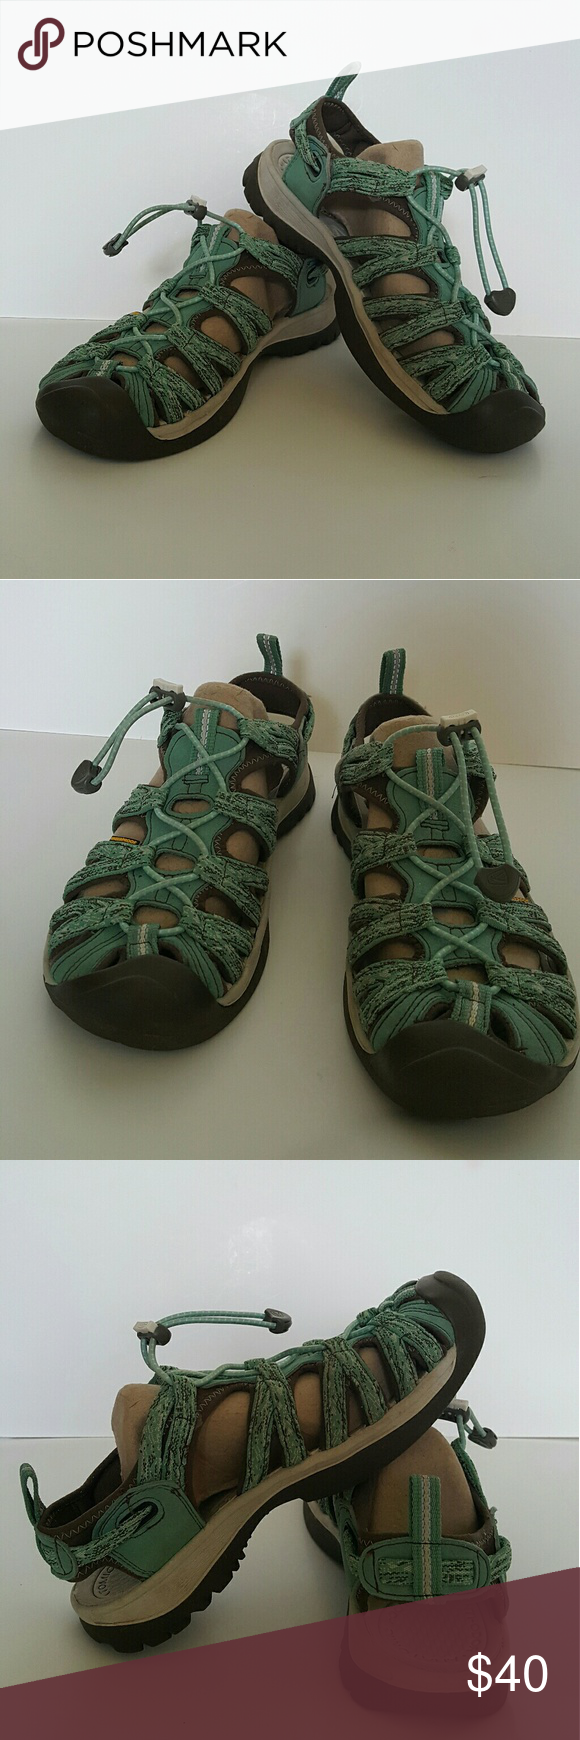 c34803675b77 KEEN sandals green waterproof sport hiking Good used condition. Non smoking  house. No hols. No spots. Box P. Keen Shoes Sandals